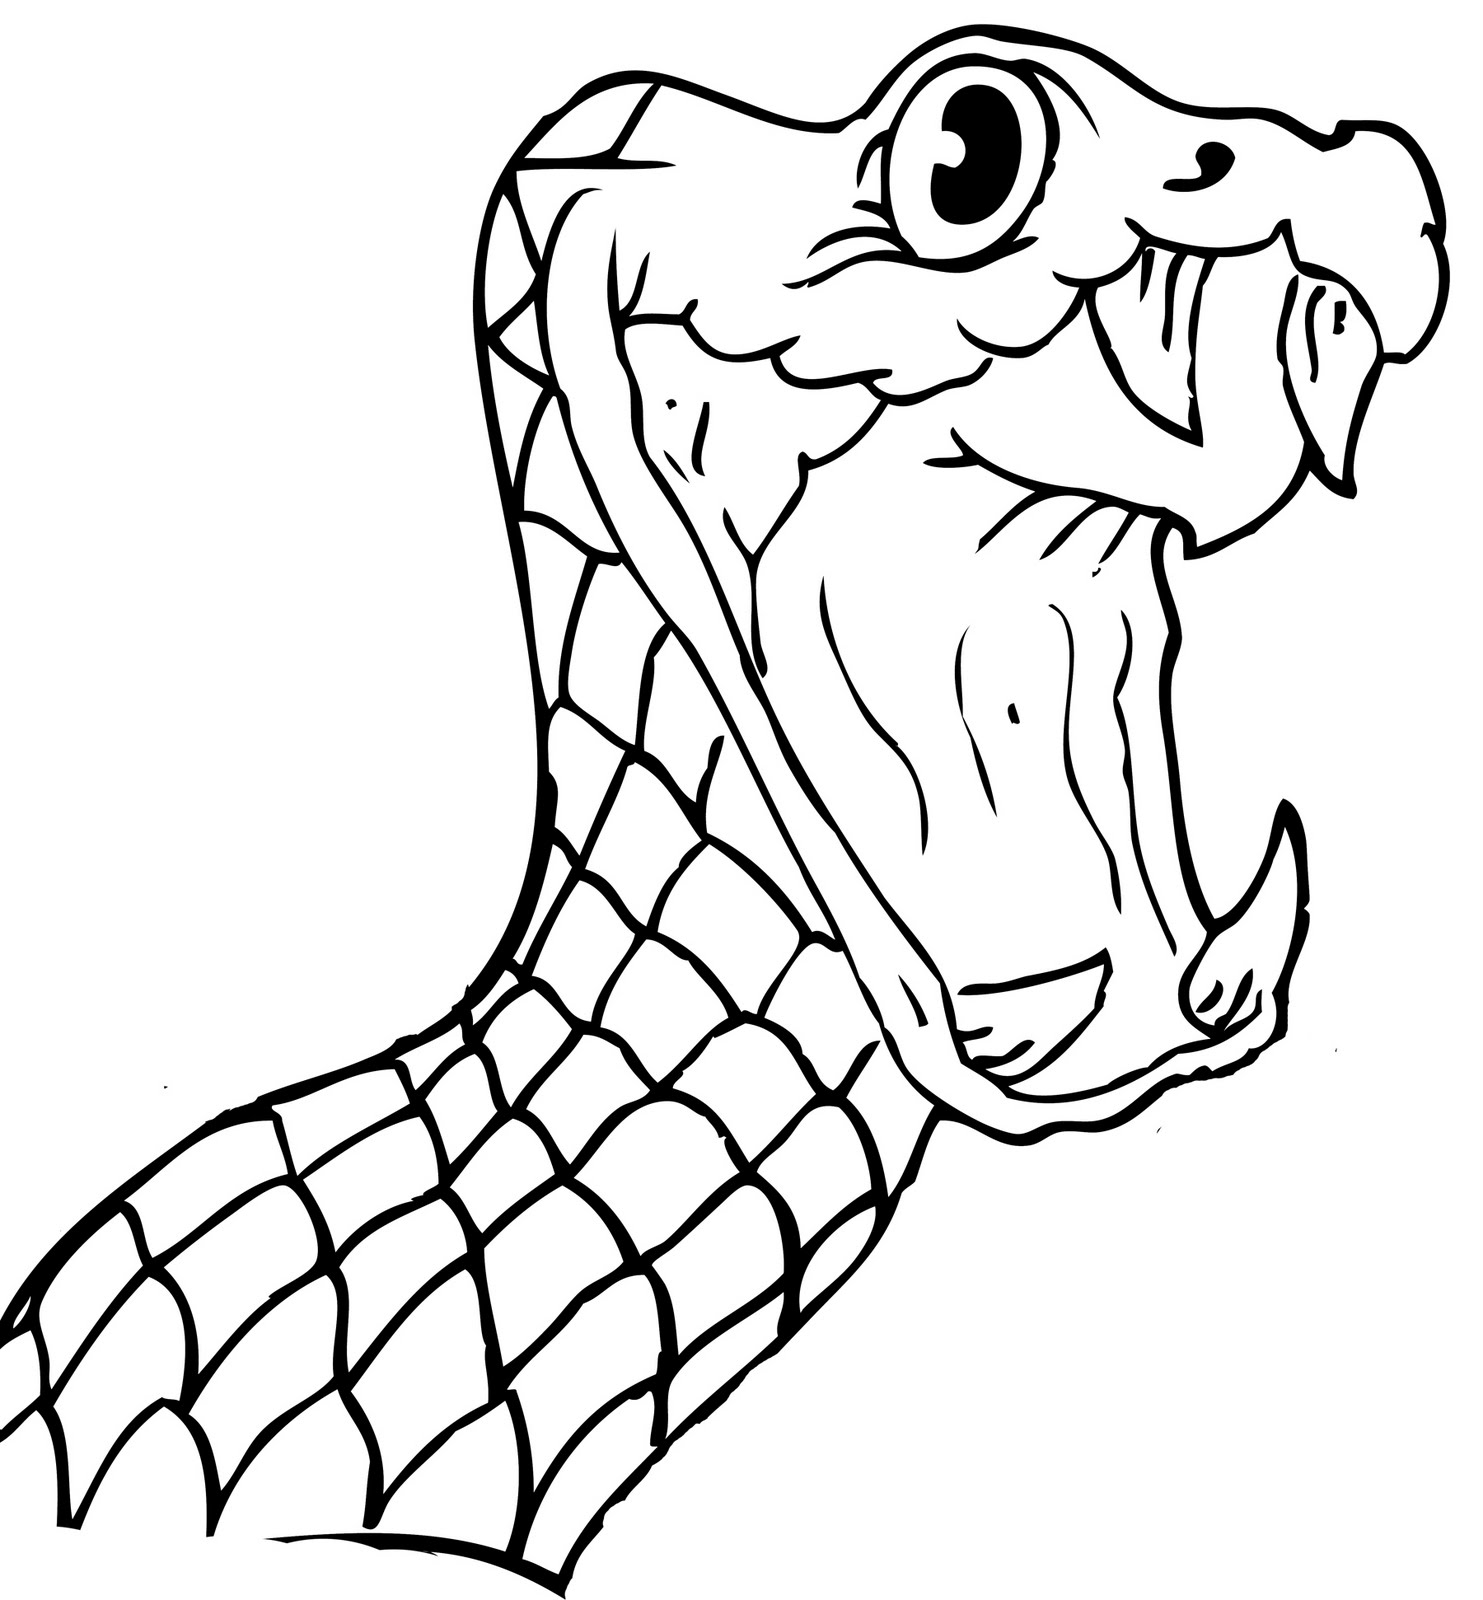 Line Drawing Snake : Cobra snake art clipart best